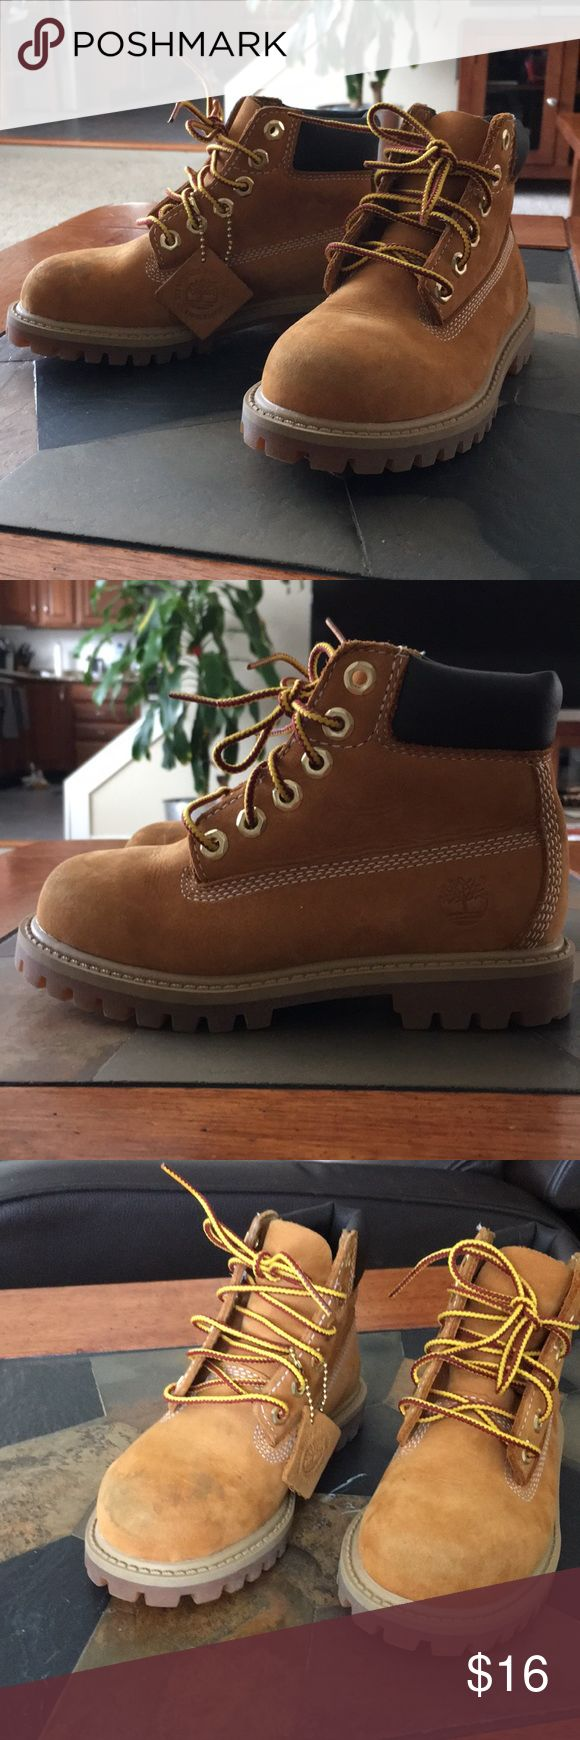 Toddler Timberlands Size 10 tan toddler Timberland boots. So tough and rugged. Minimal wear, but toes have marks and I'm afraid to clean them. Timberland Shoes Boots